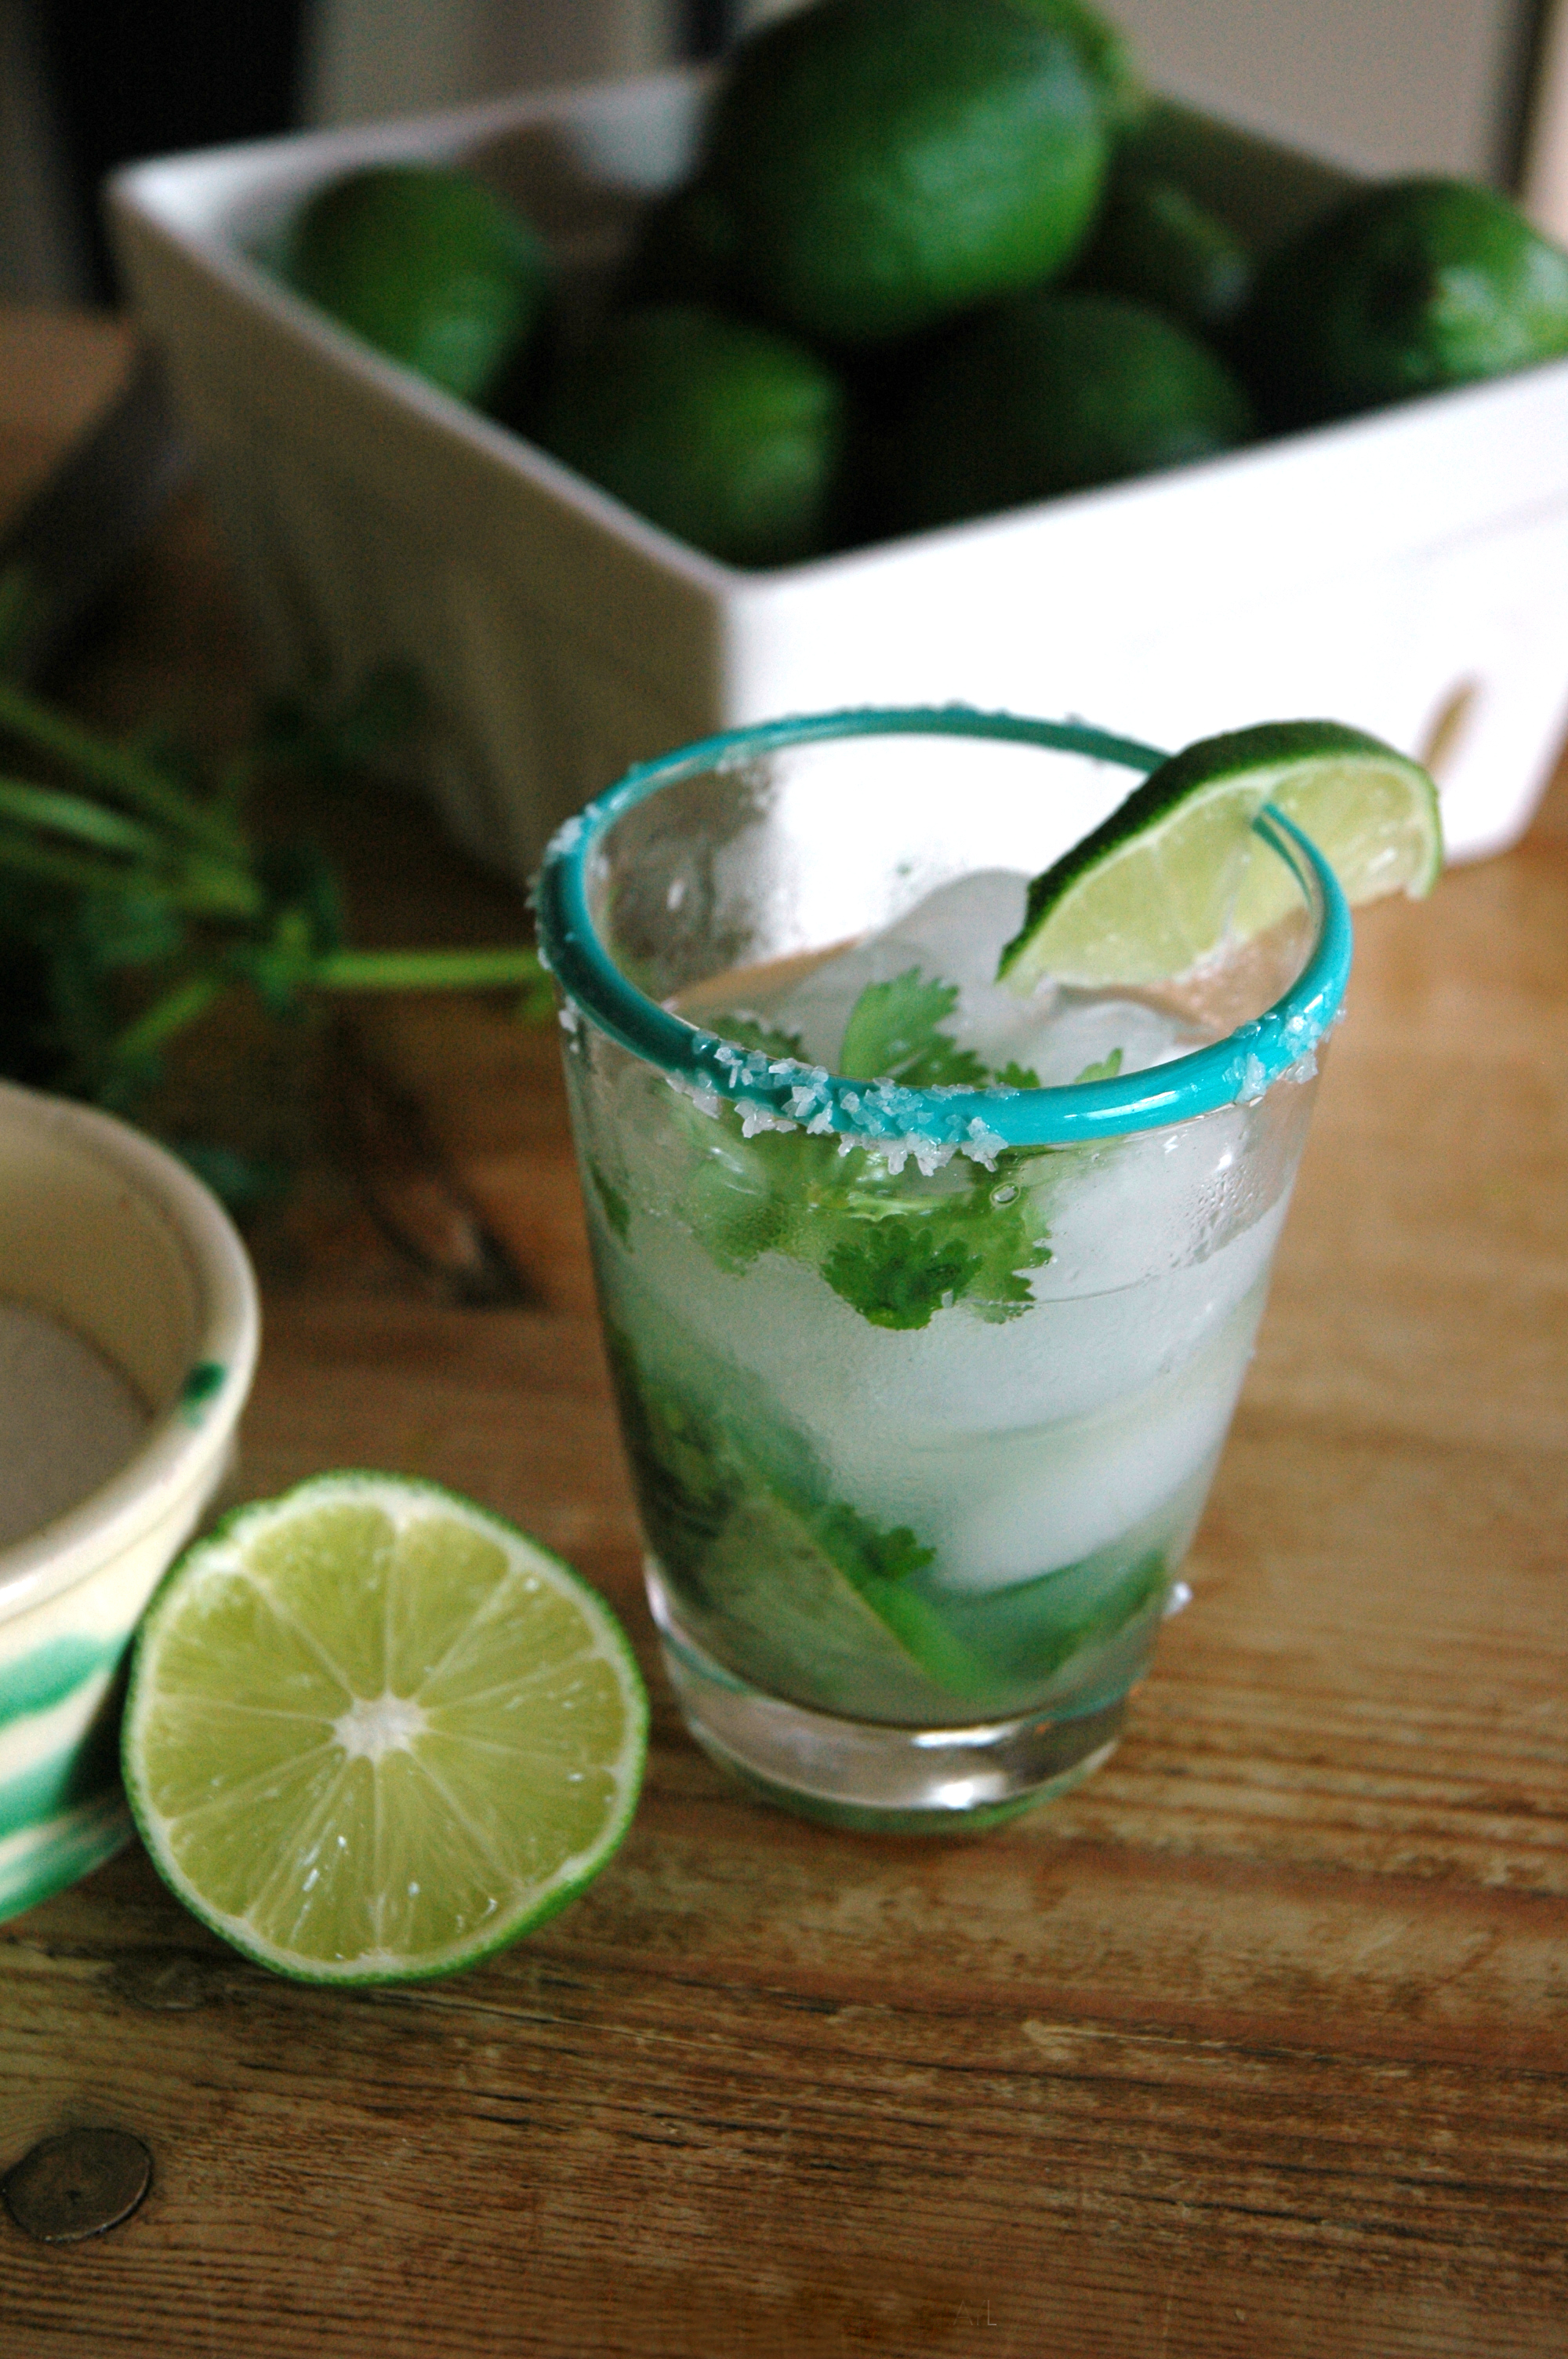 Cilantro tequila cocktail recipe - Cilantro Margarita